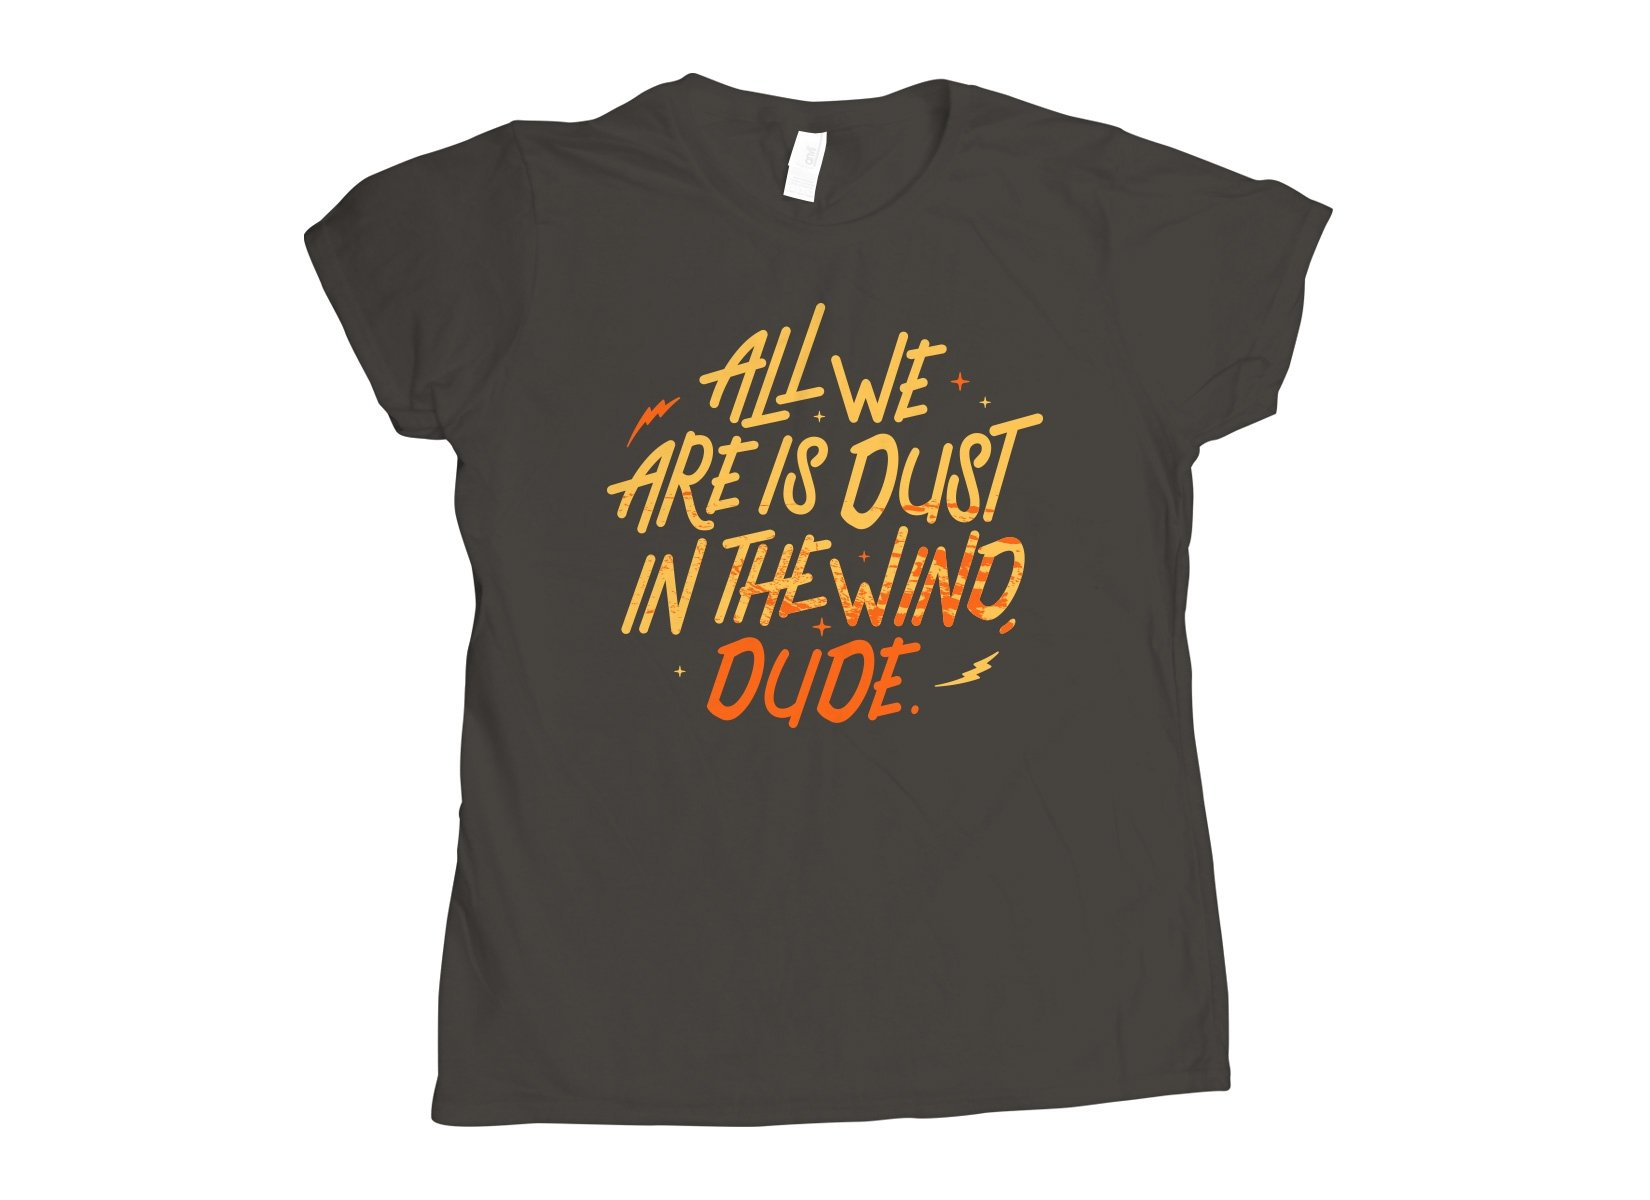 All We Are Is Dust In The Wind, Dude on Womens T-Shirt